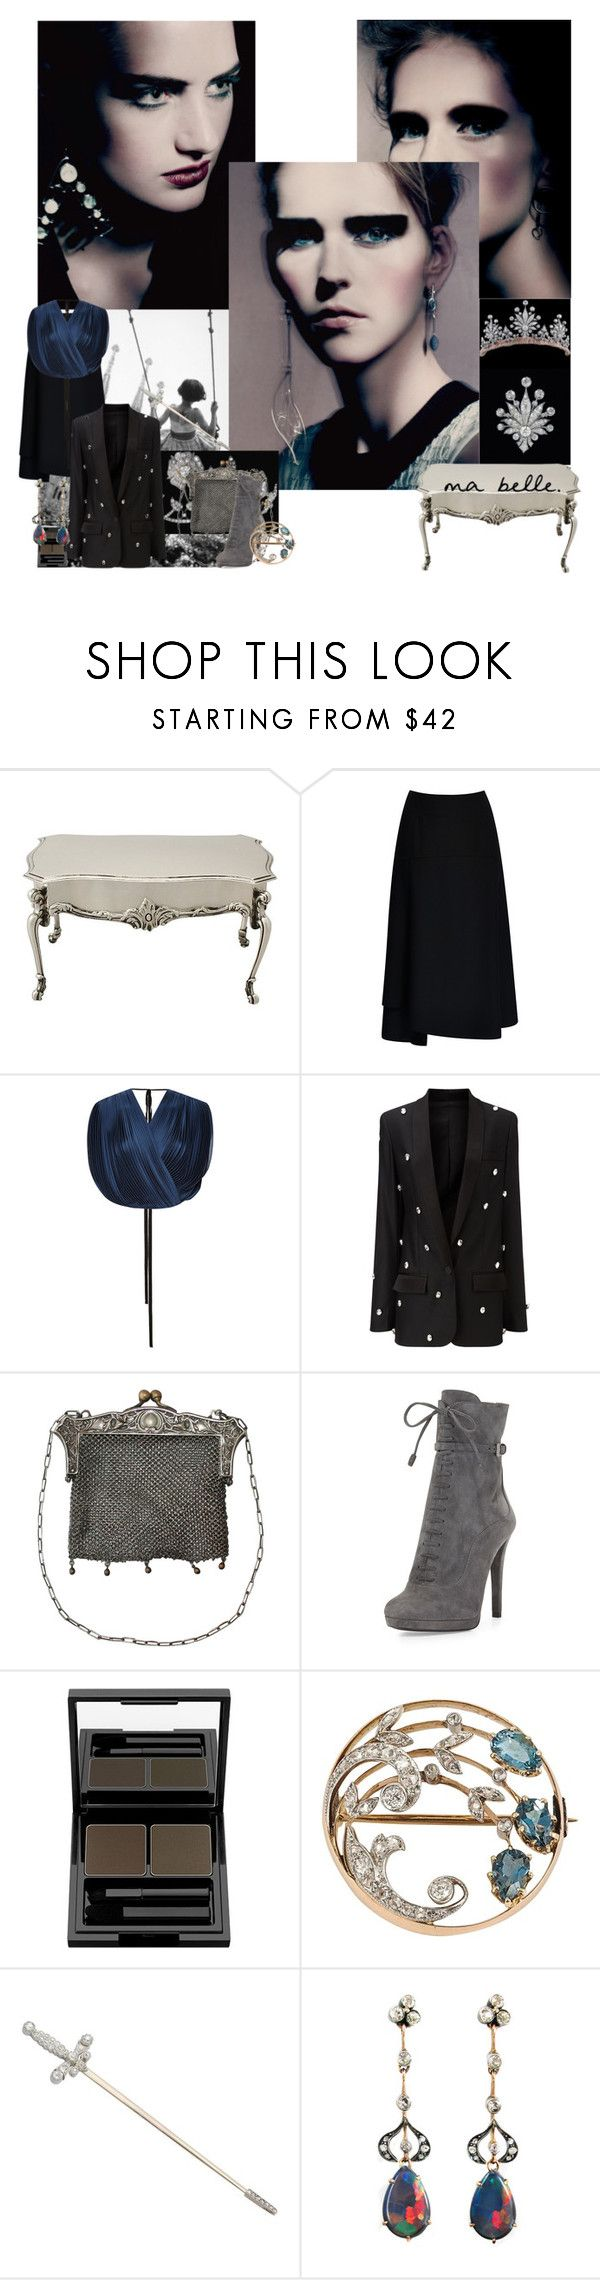 """Belle"" by sue-mes ❤ liked on Polyvore featuring Epoque, Once Upon a Time, Tome, Racil, CO, Prada and shu uemura"